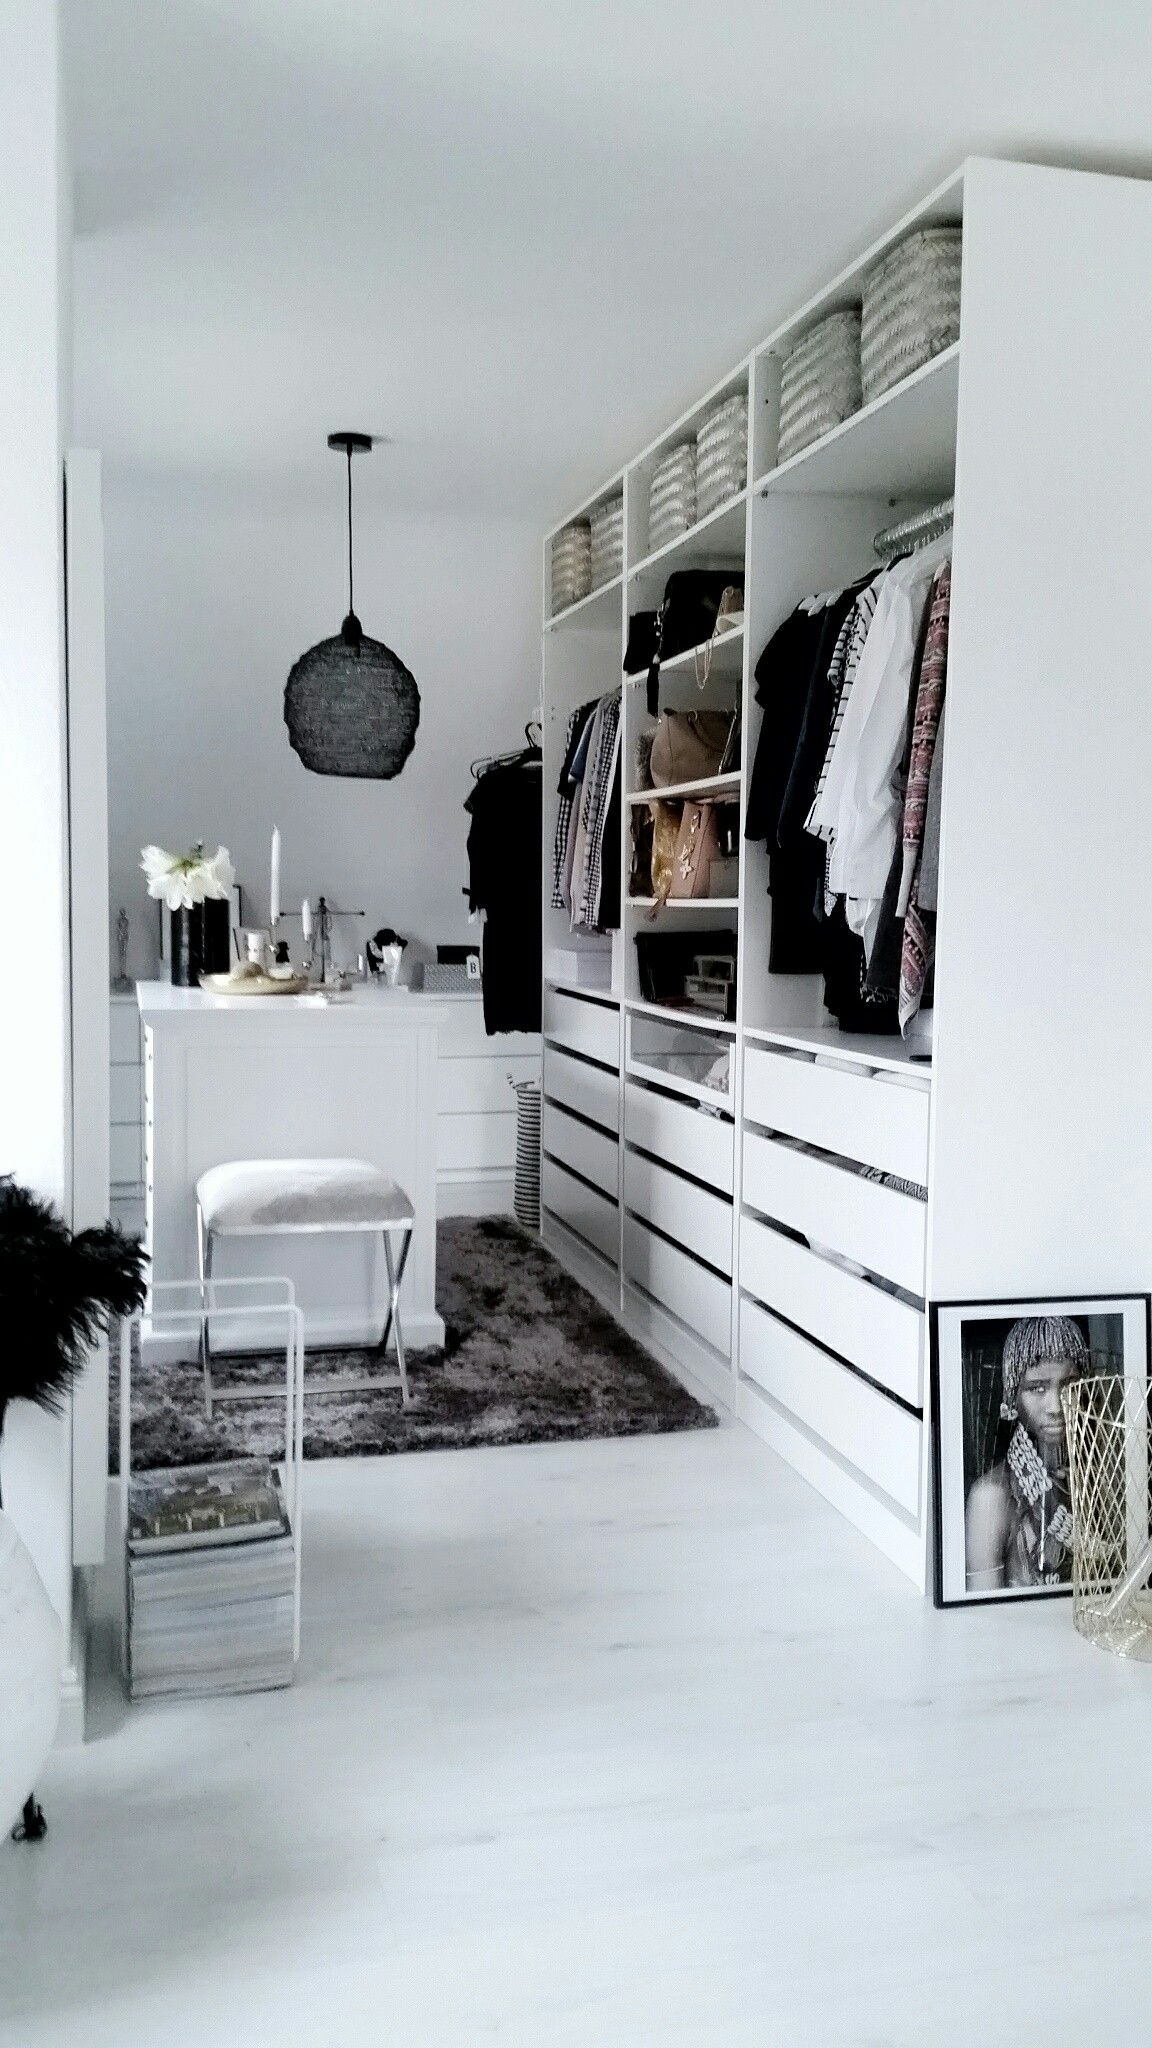 ikea pax ankleidezimmer inspiration weiss dressing room ankleidezimmer pinterest ikea. Black Bedroom Furniture Sets. Home Design Ideas